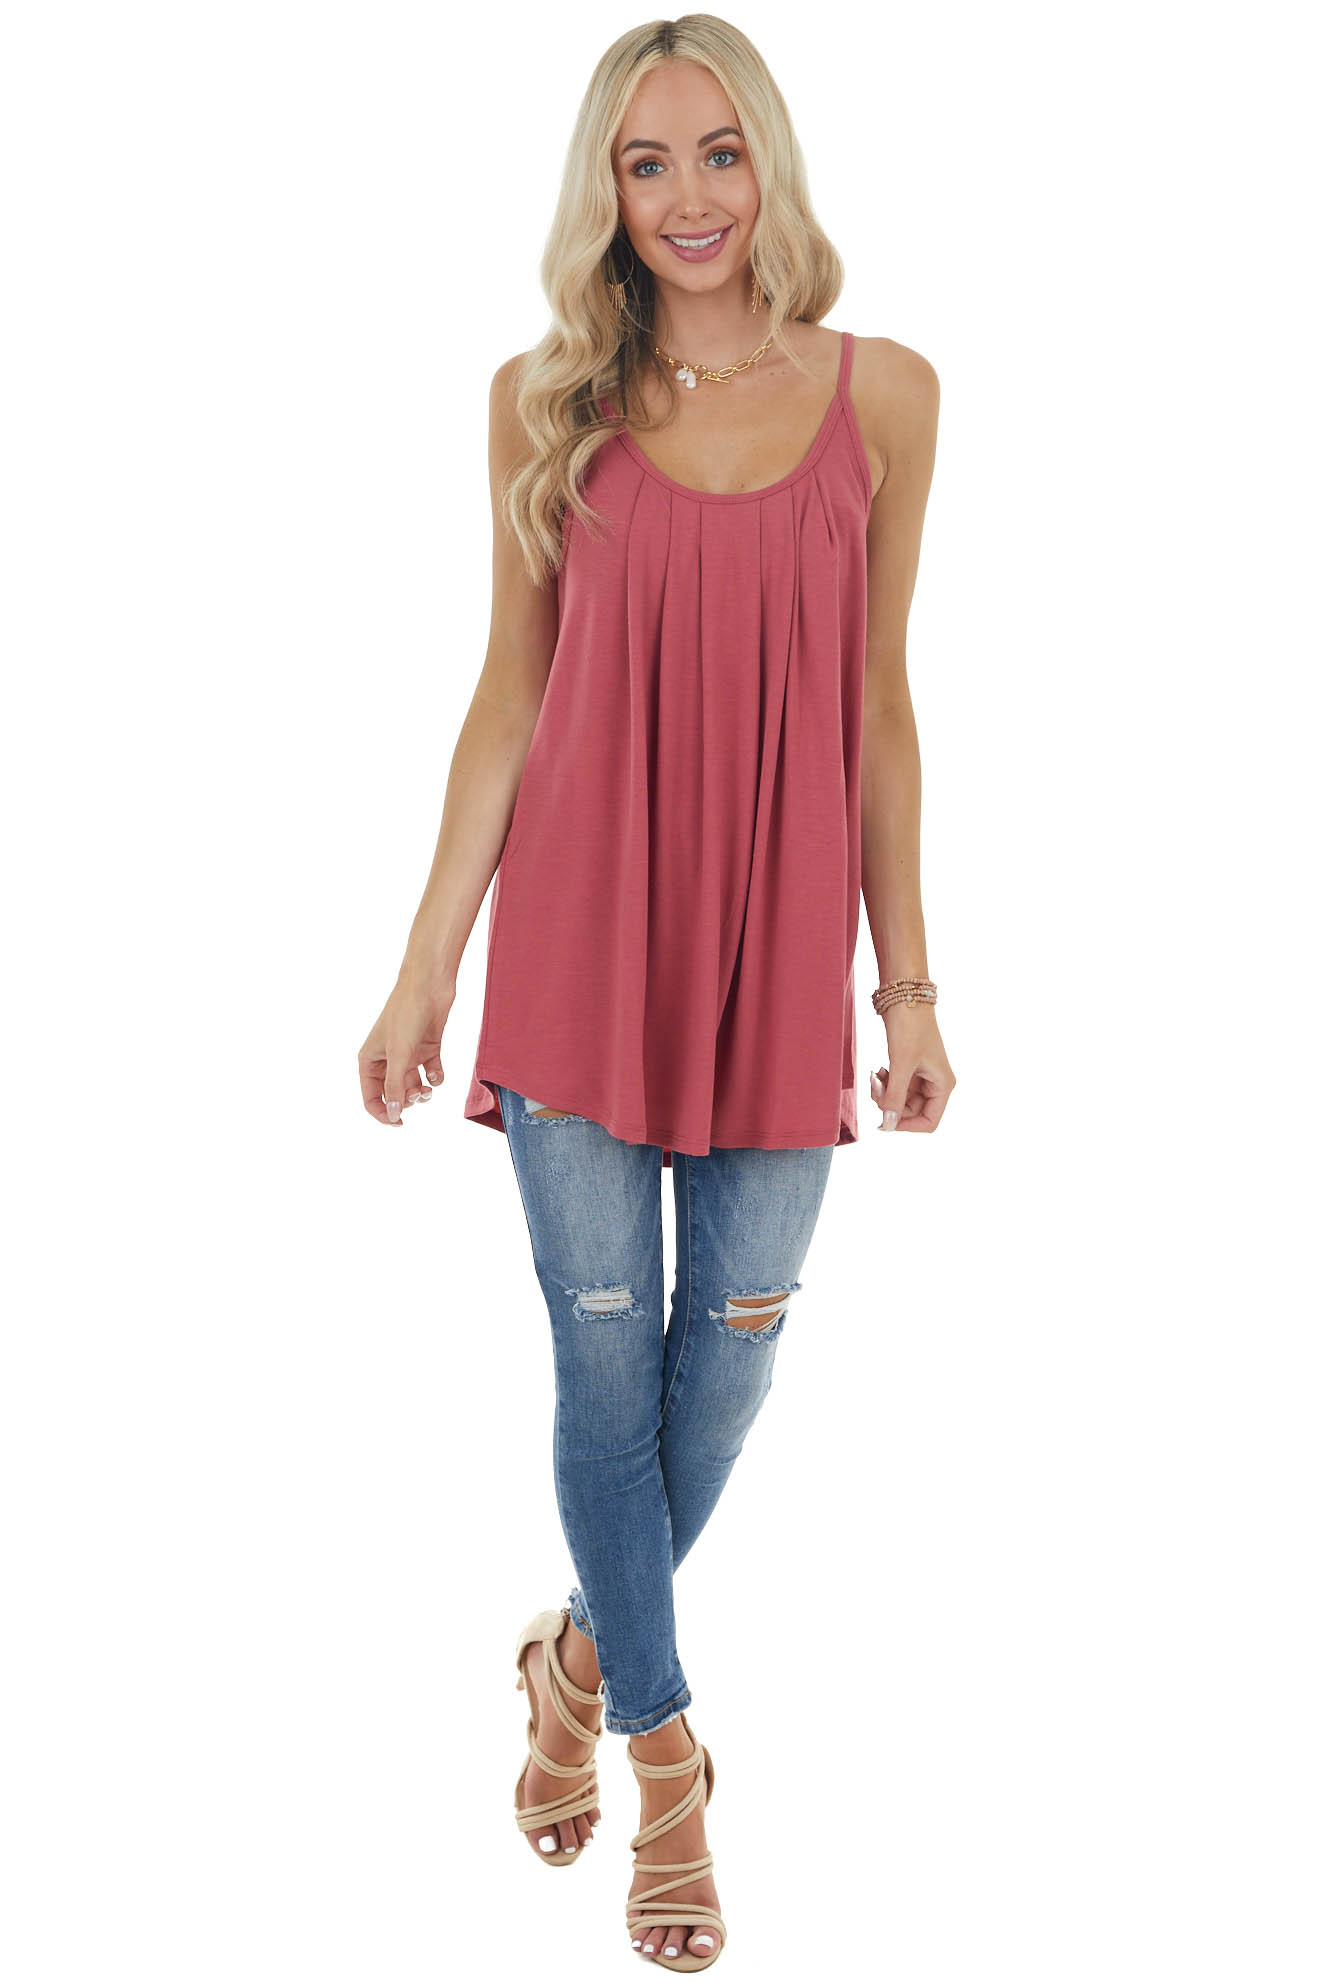 Hibiscus Red Sleeveless Knit Top with Pleated Neckline